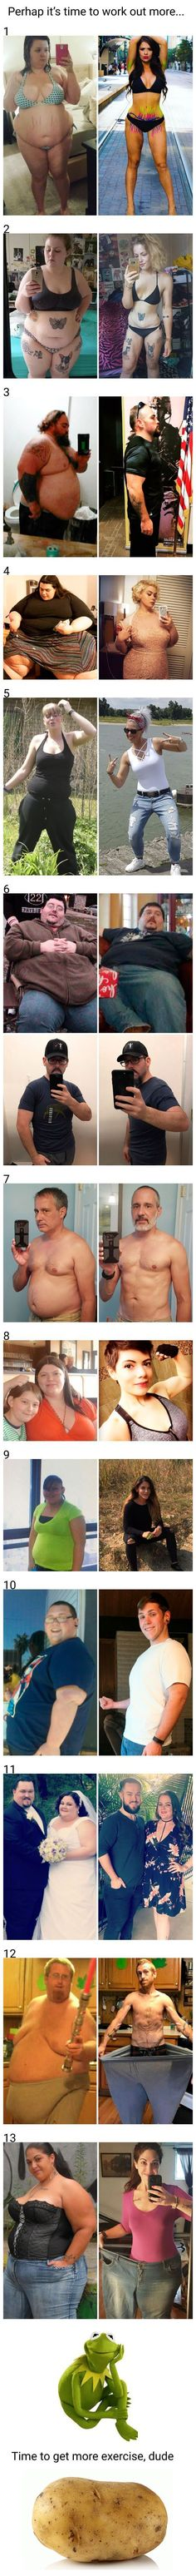 10+ Before And After Photos Of People With Dramatic Weight Loss #loseweightbeforeandafter #BellyFatTraining #FitnessMotivationPhoto